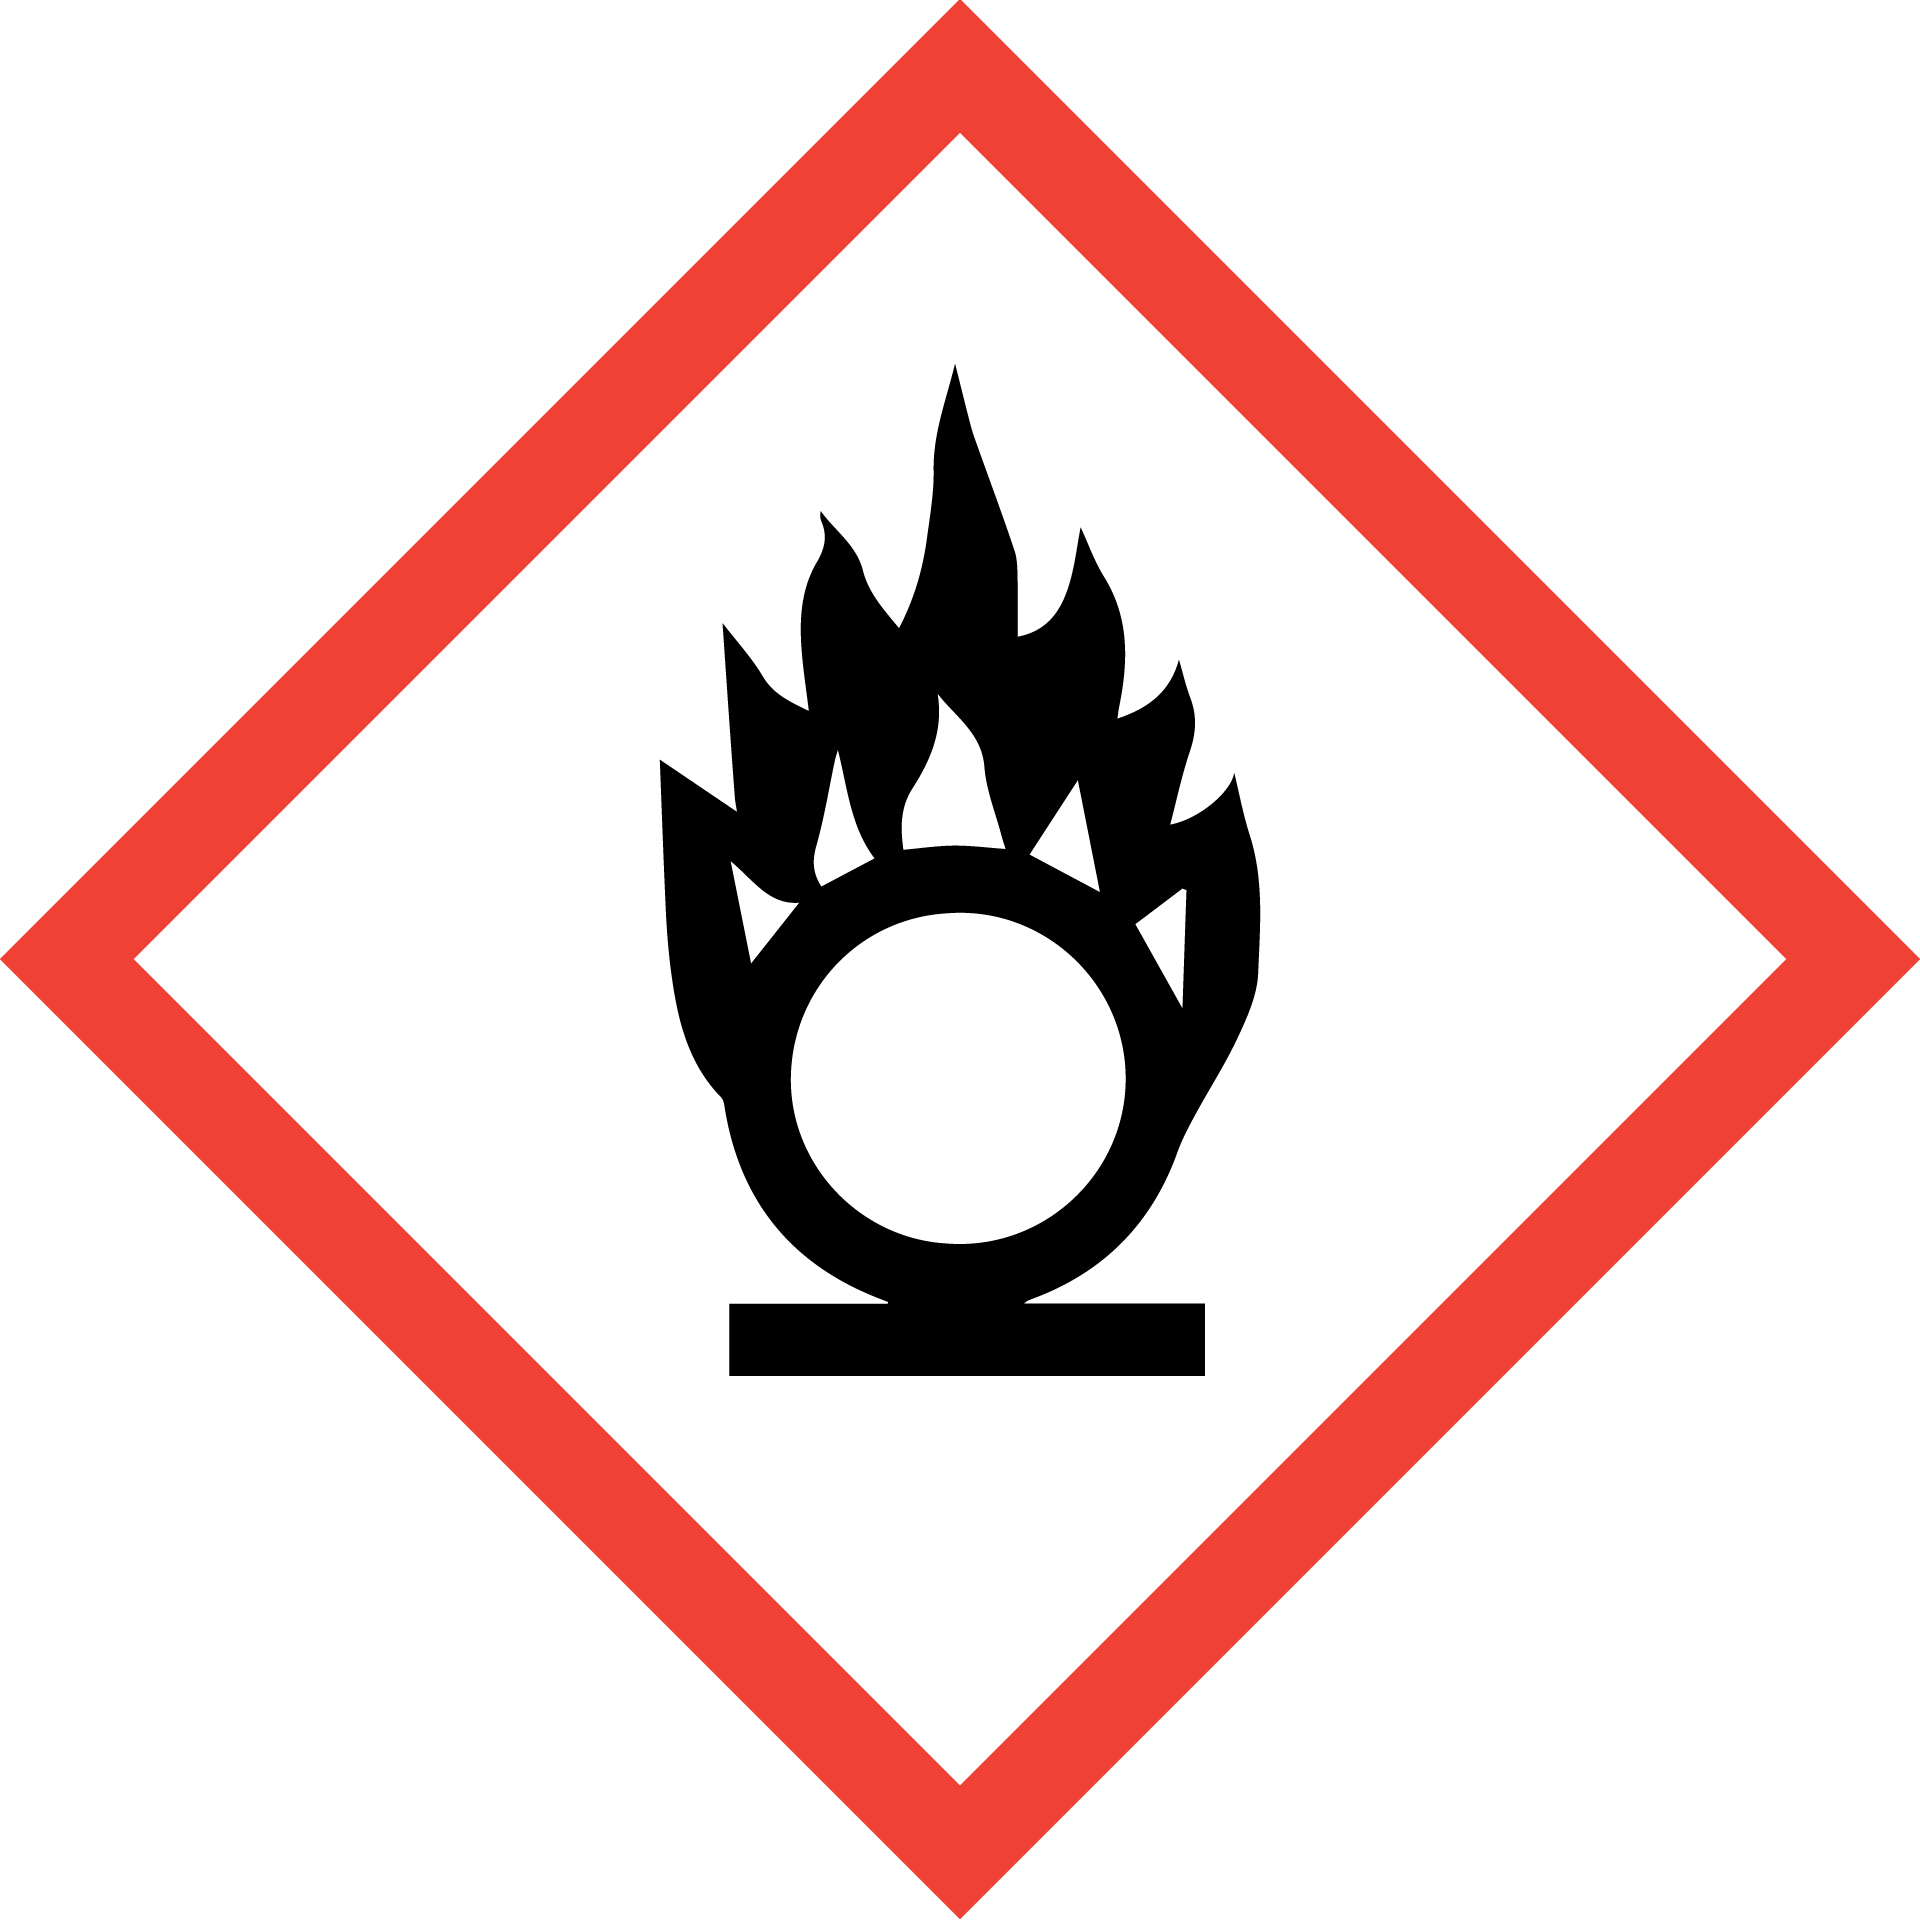 Chemical symbol for increases fire risk